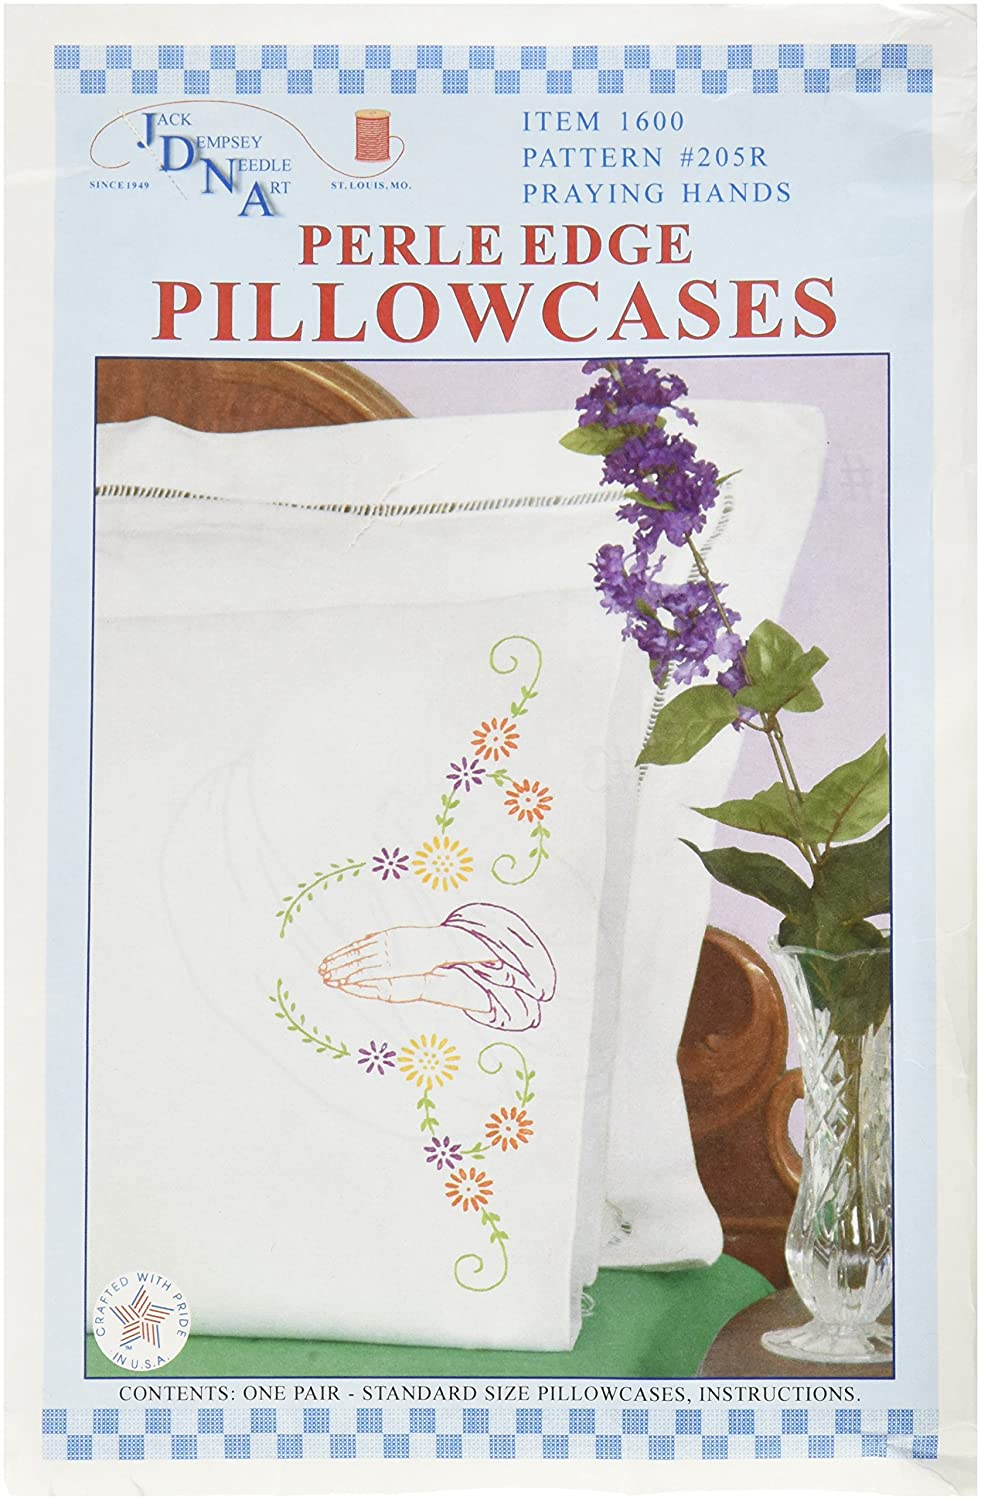 Jack Dempsey Stamped Pillowcases with White Perle Edge, Praying Hands, 2-Pack 1600 205